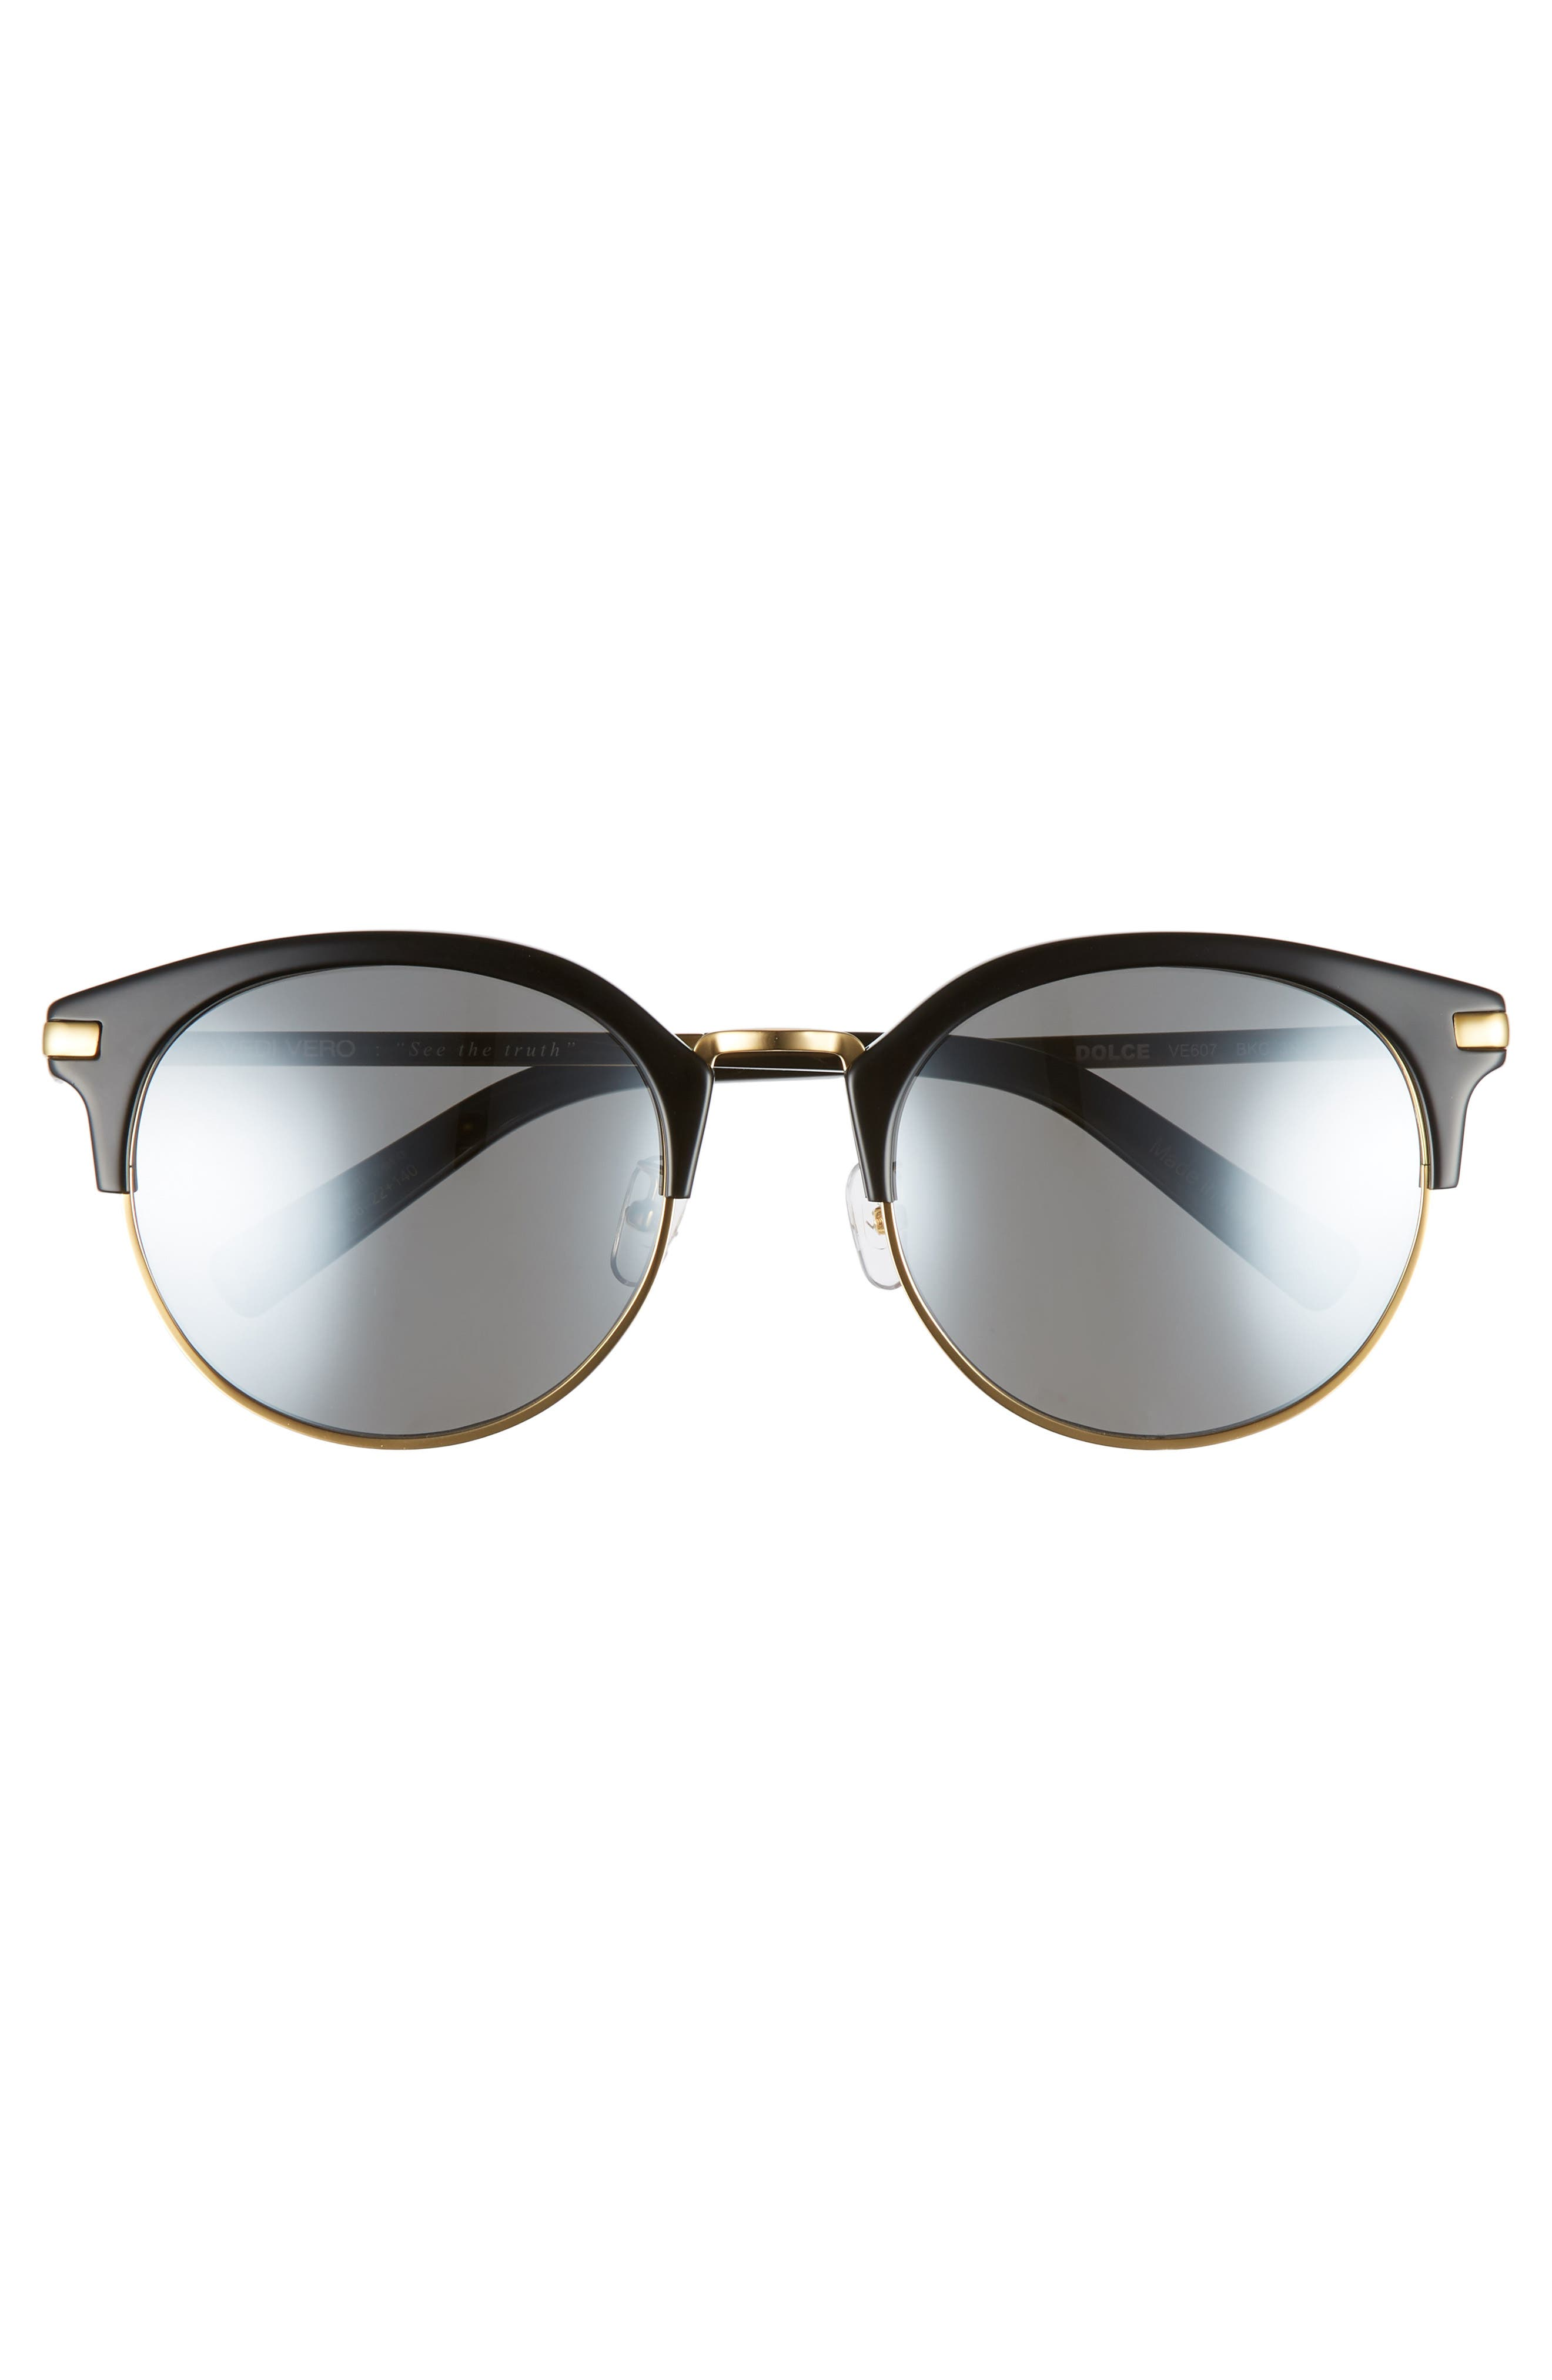 56mm Round Sunglasses,                             Alternate thumbnail 3, color,                             Gold And Black/Blue Mirror